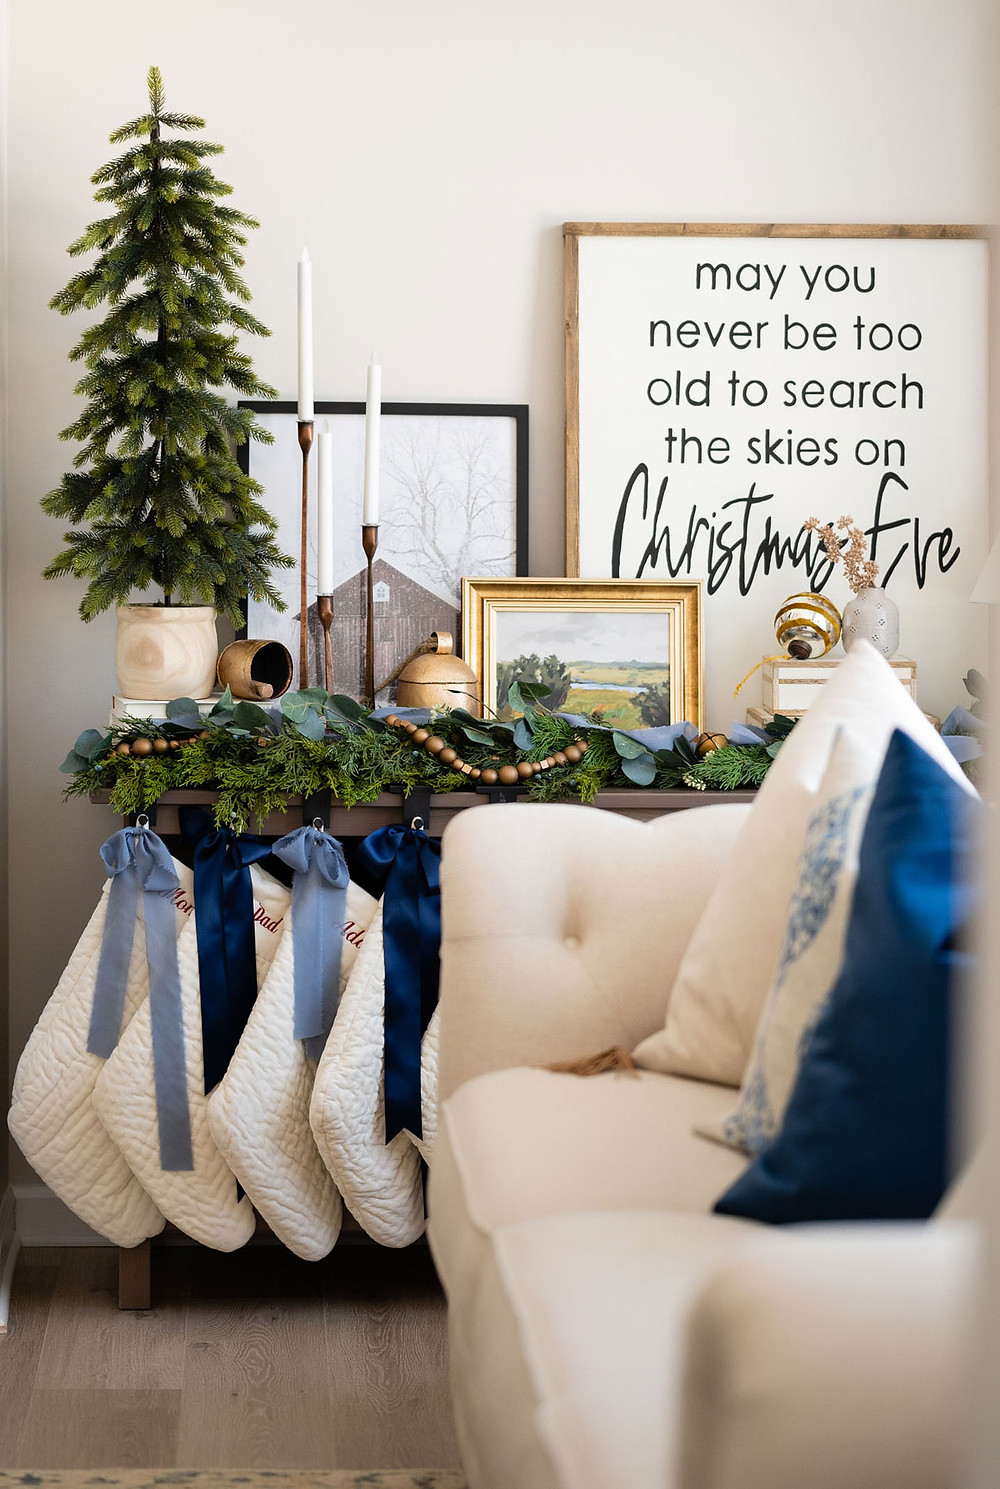 Christmas decorations and stockings